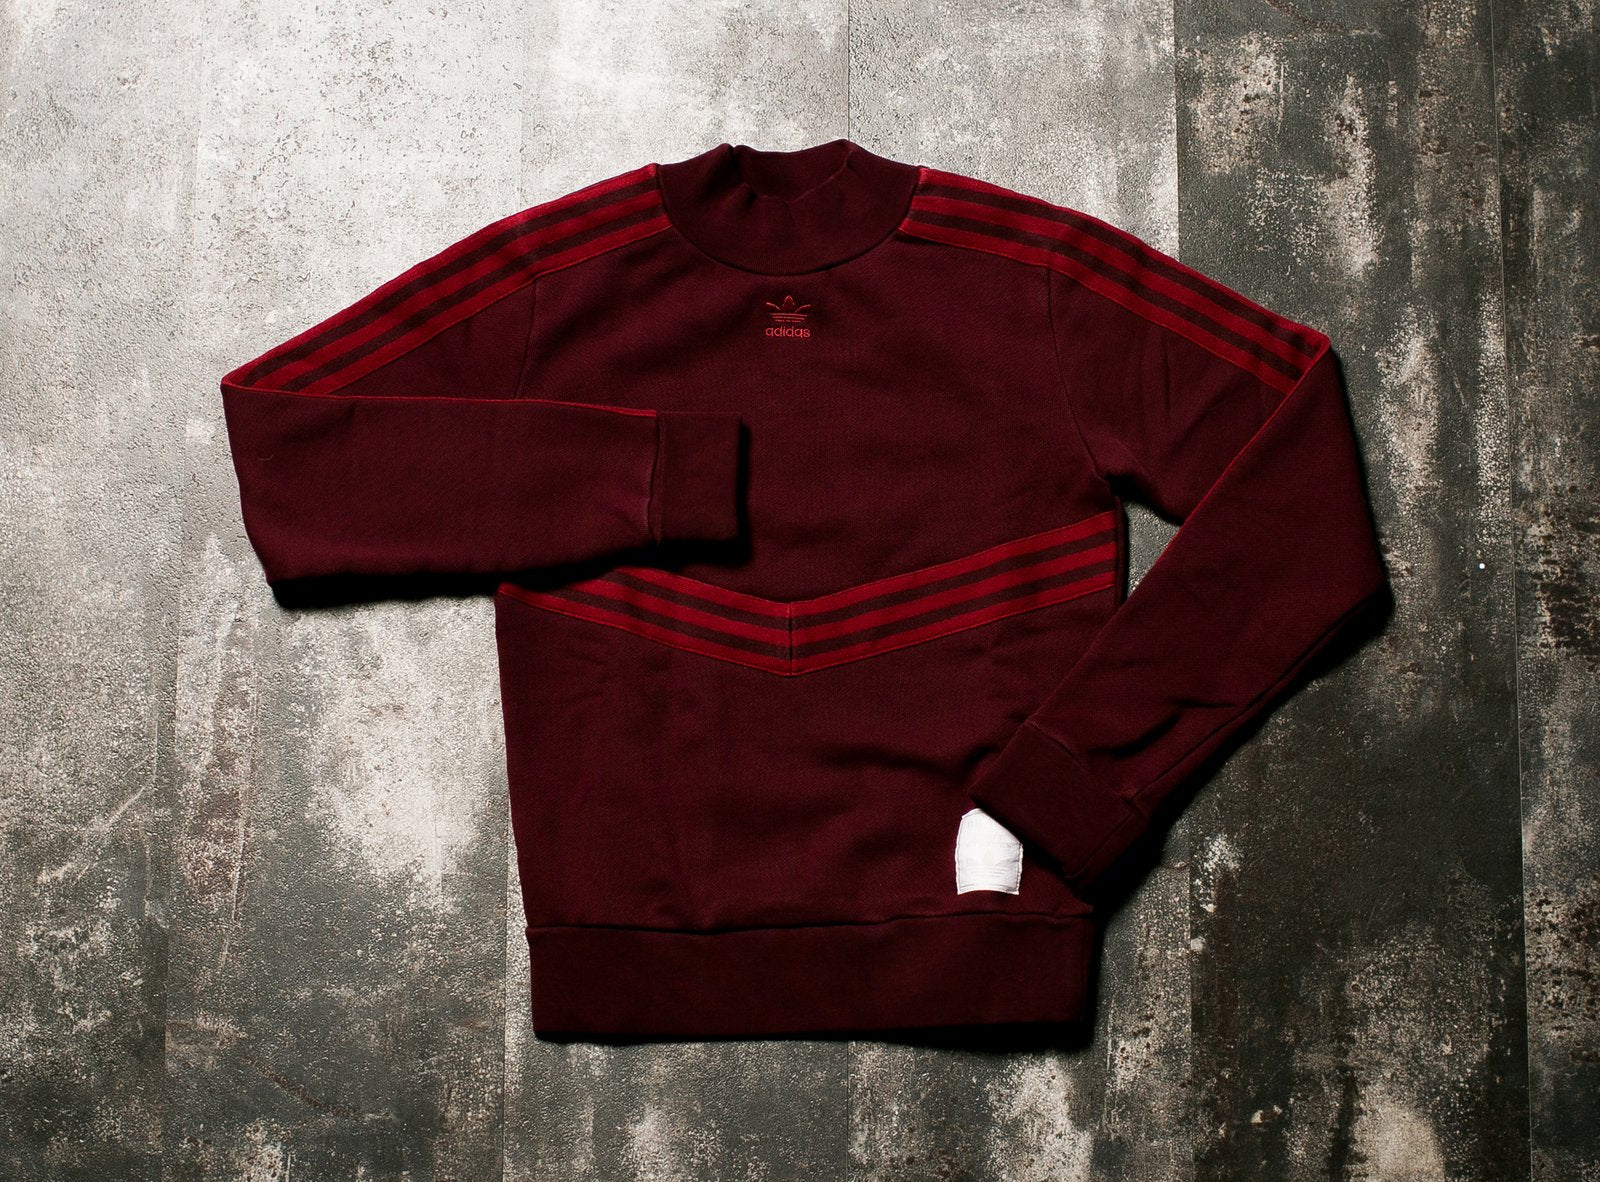 ADIDAS ADIBREAK SWEAT